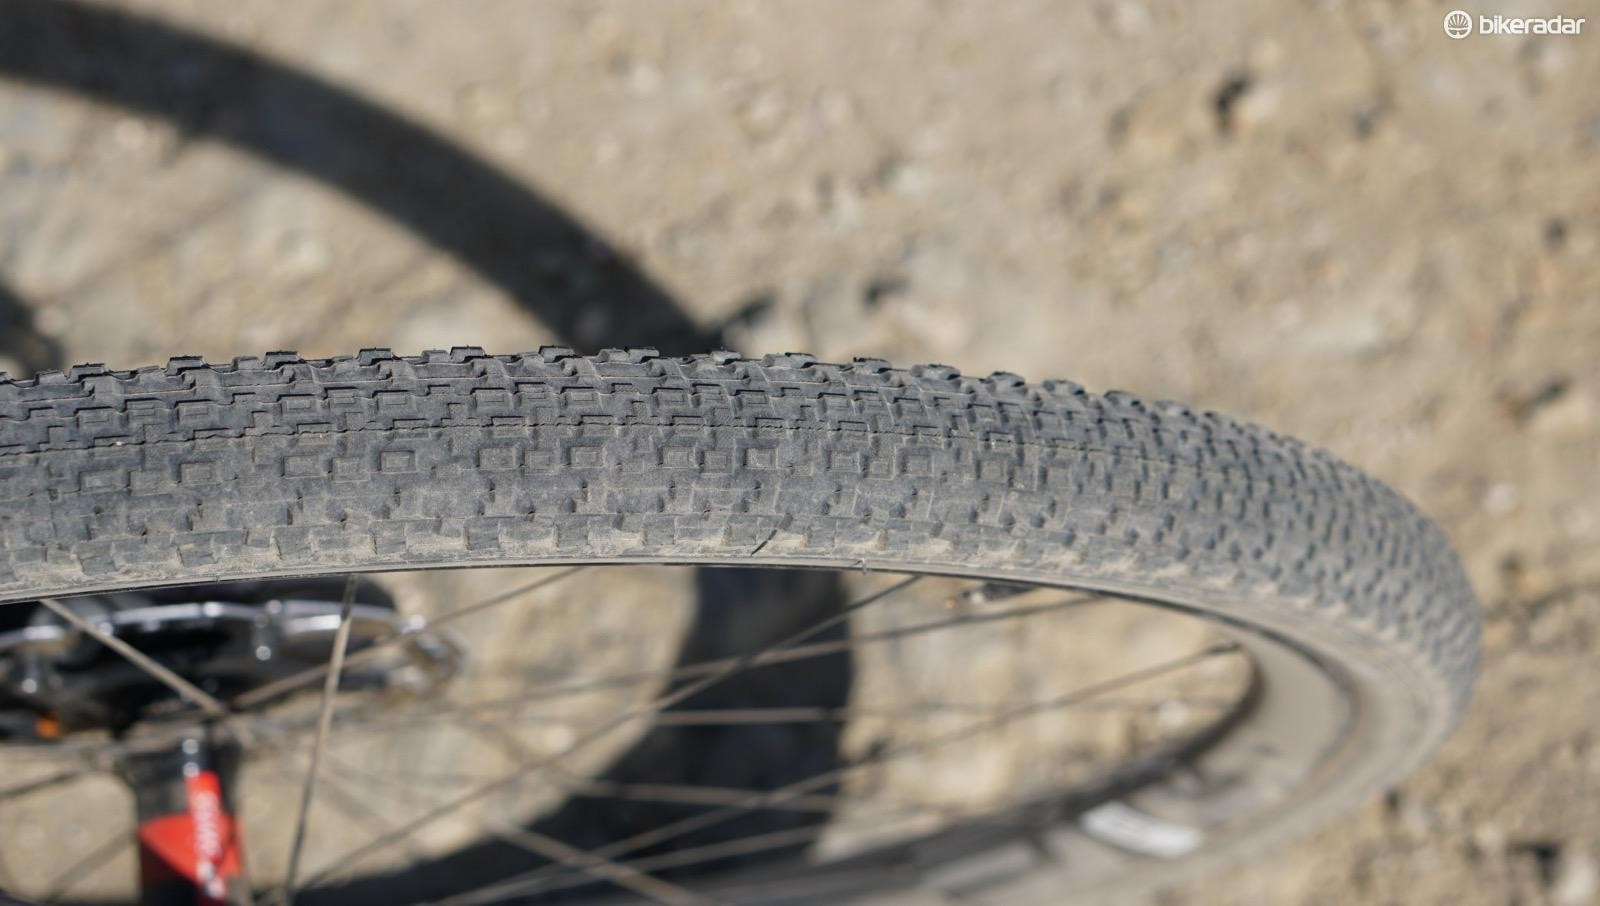 Like any tire, opinions on the 40mm Rambler vary based on who you ask. Ben, riding in the desert, likes it. Tom, riding in wetter conditions, wasn't completely sold on it